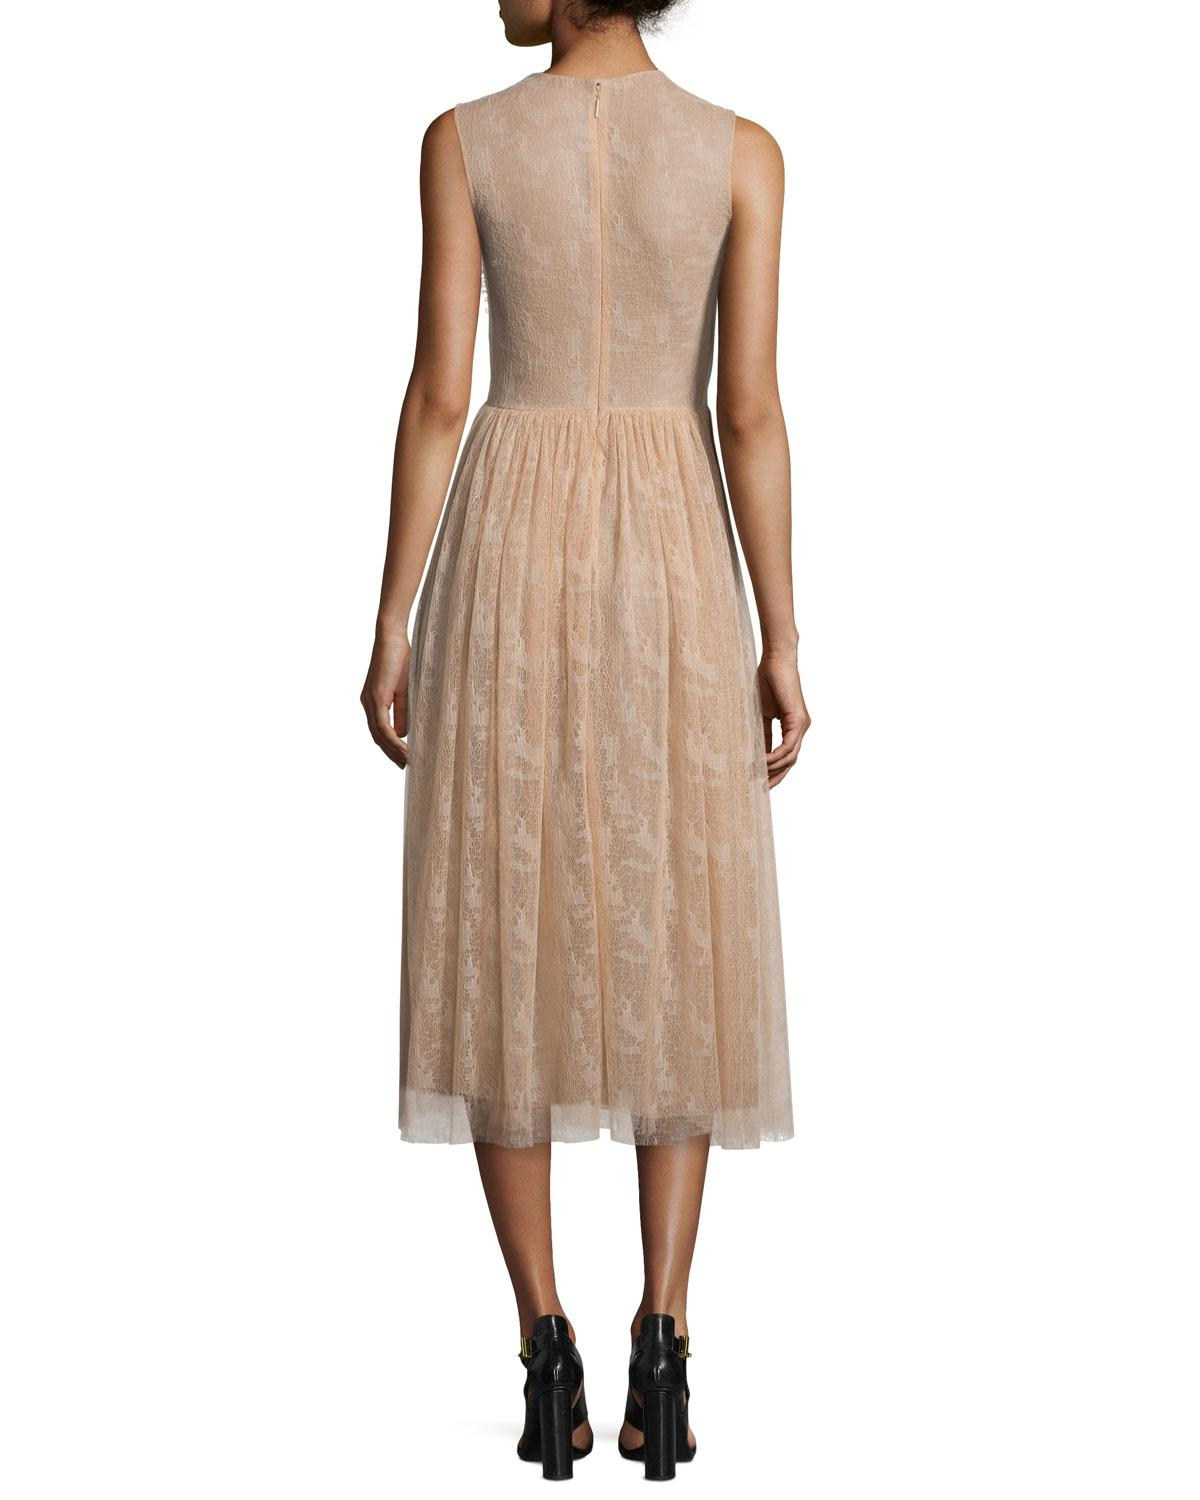 04496ee3345 Lyst - Jason Wu Sleeveless Abstract Lace Dress in Brown